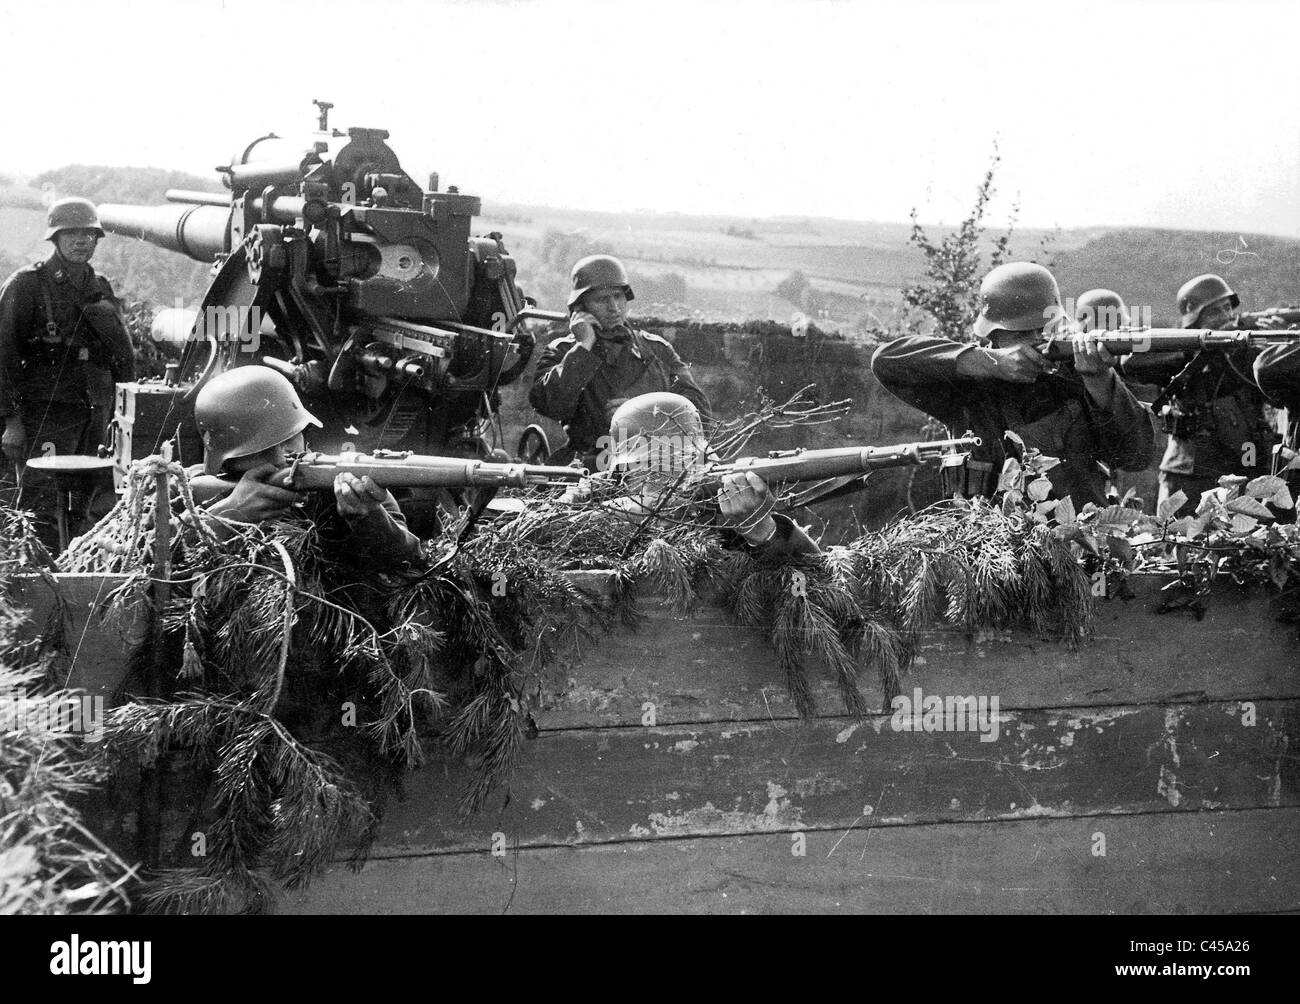 Soldiers of a German antiaircraft gun exercise the antiaircraft defense - Stock Image